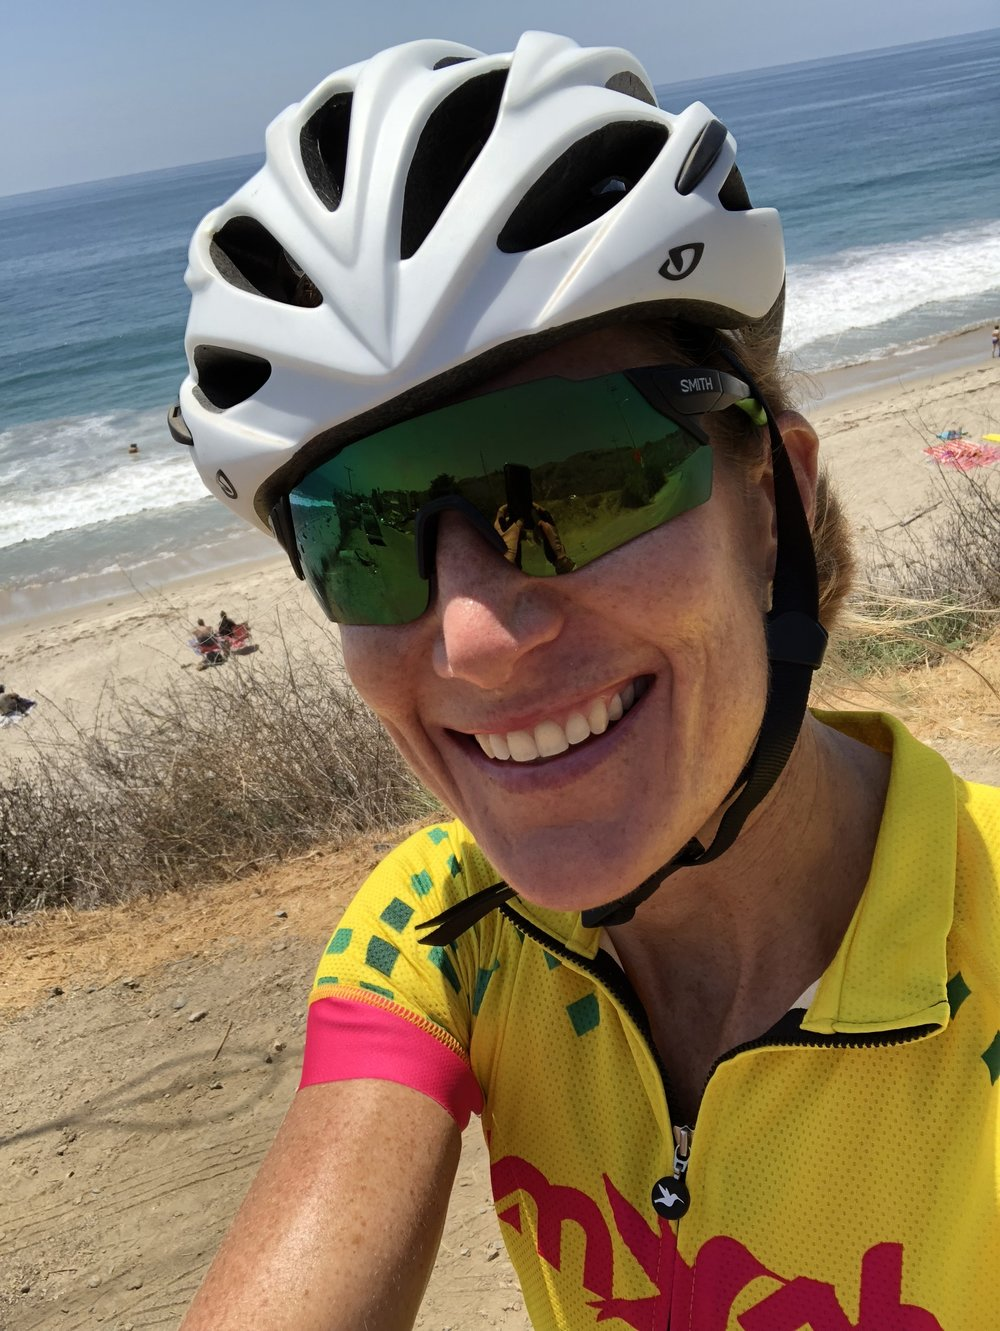 Ninety miles into a 101 mile bike ride along PCH.